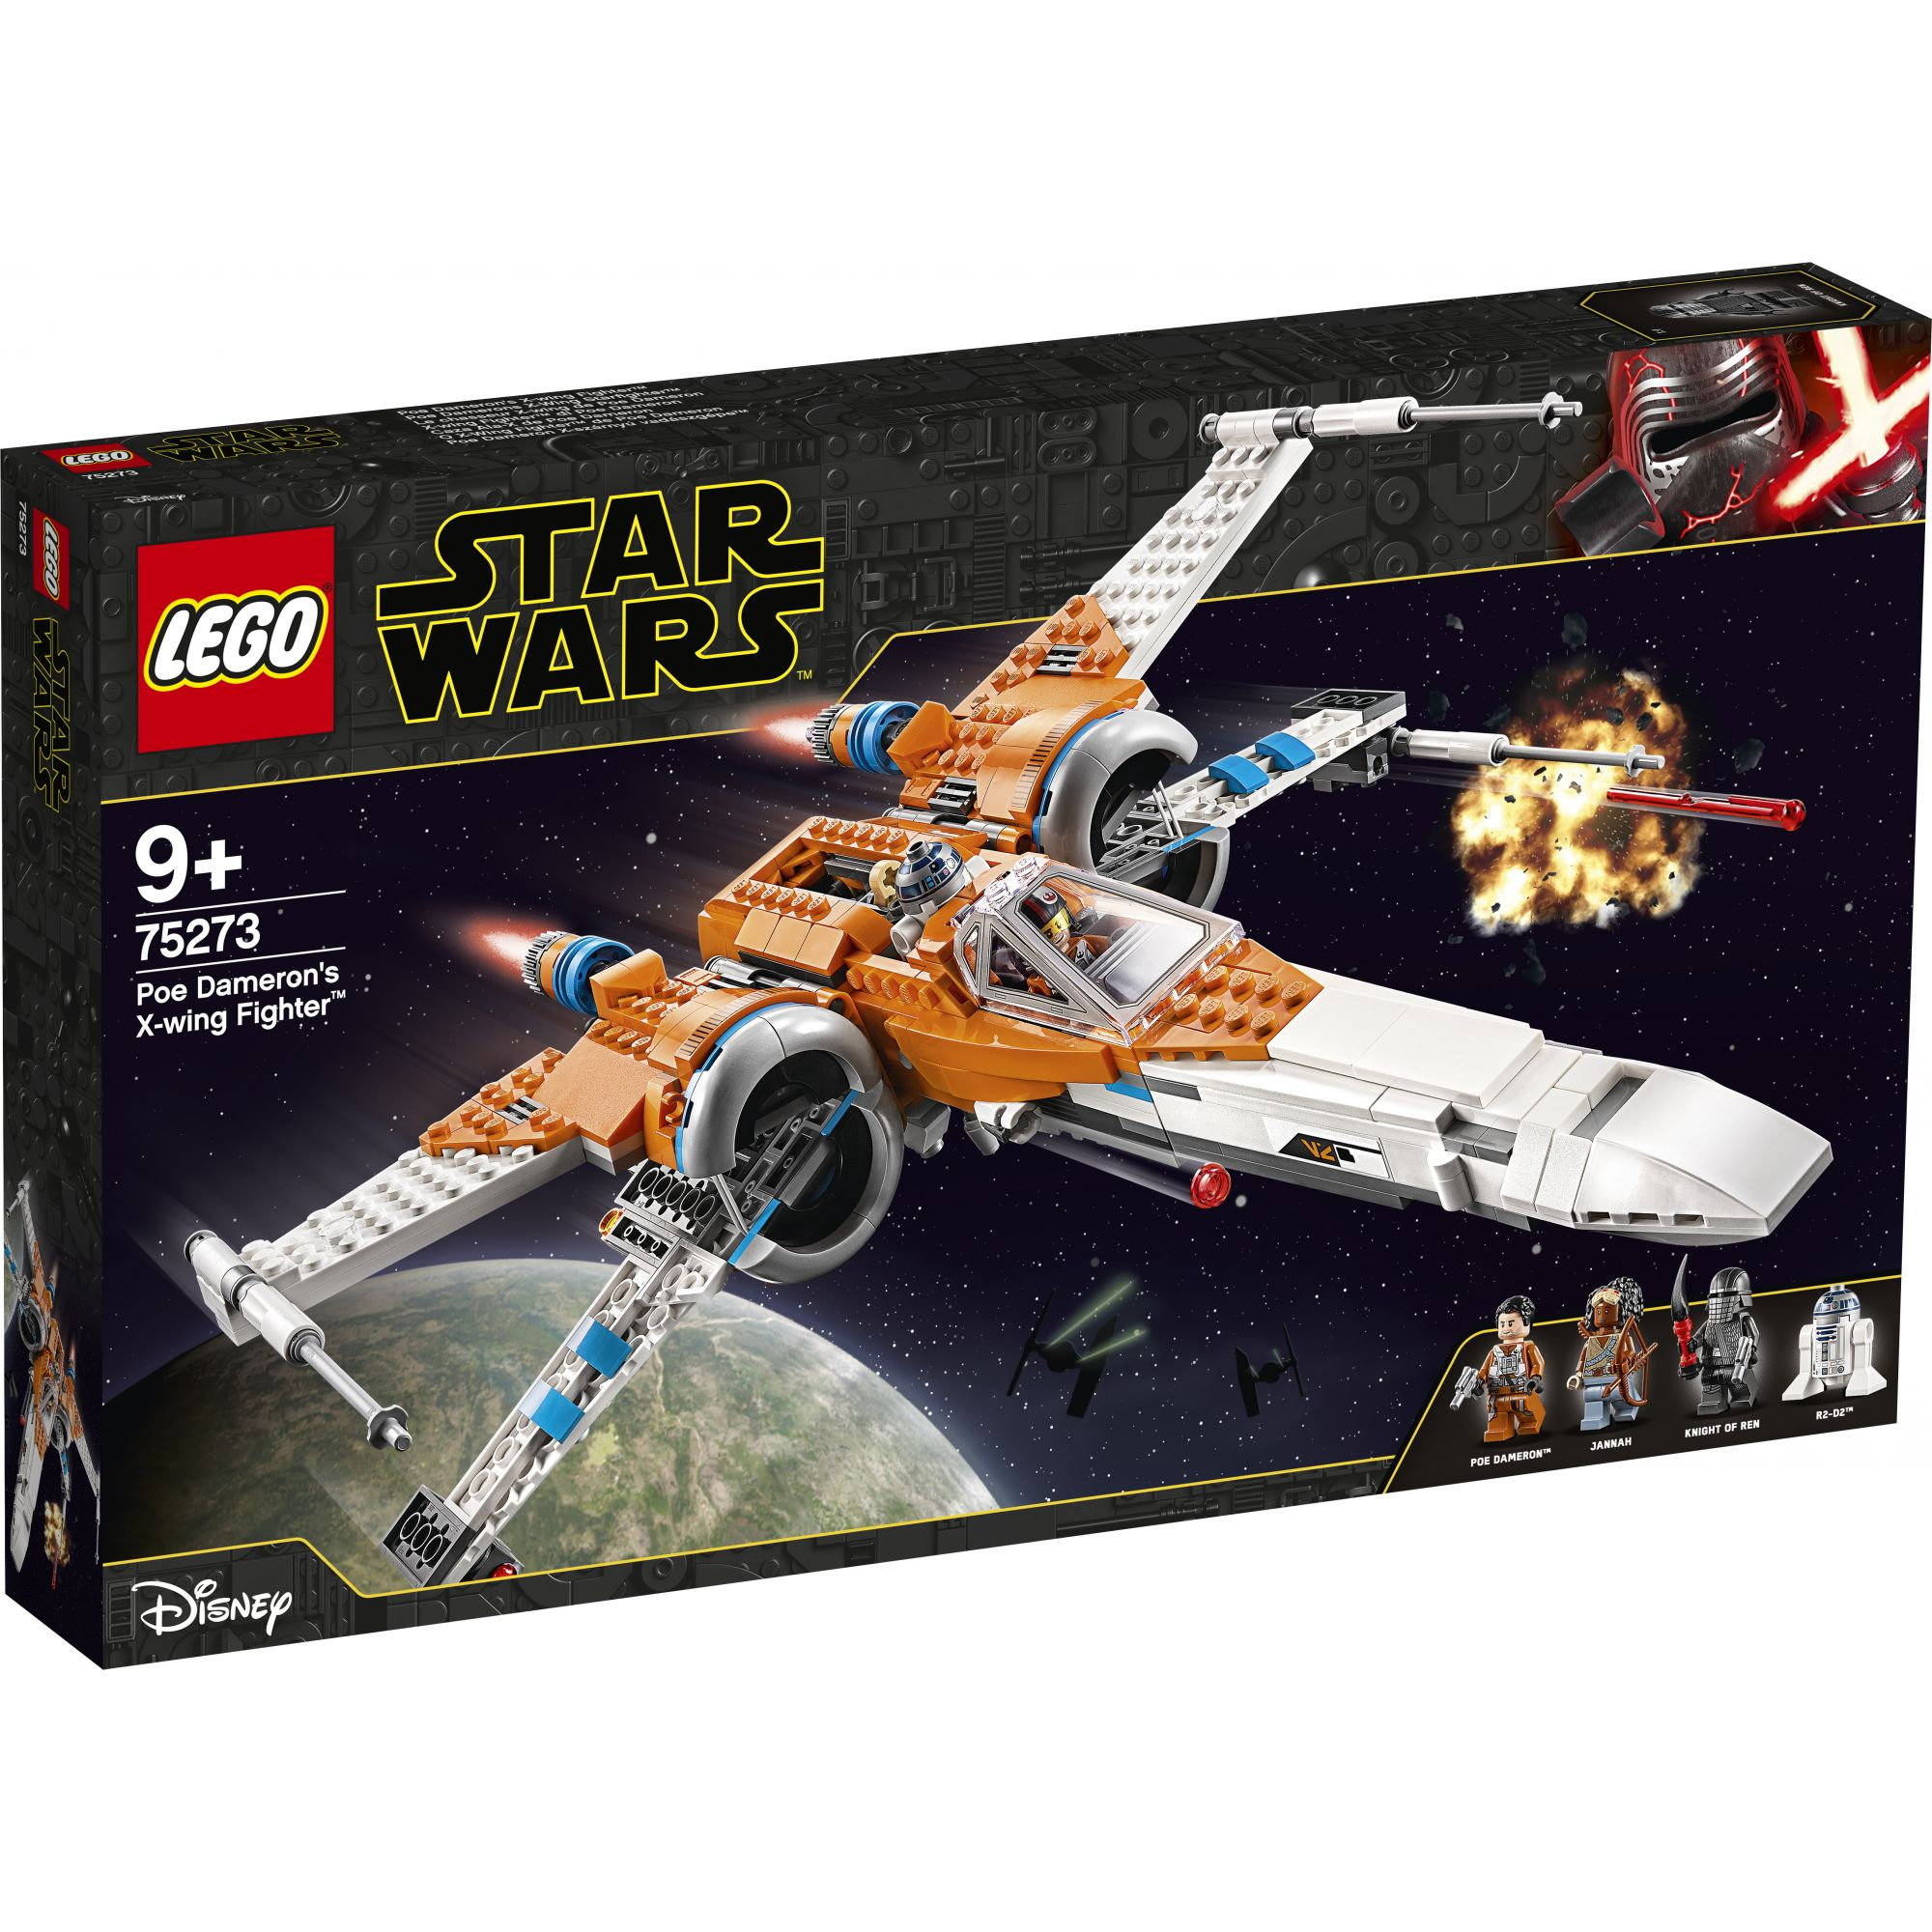 LEGO Star Wars Episode IX X-wing Fighter di Poe Dameron - 75273